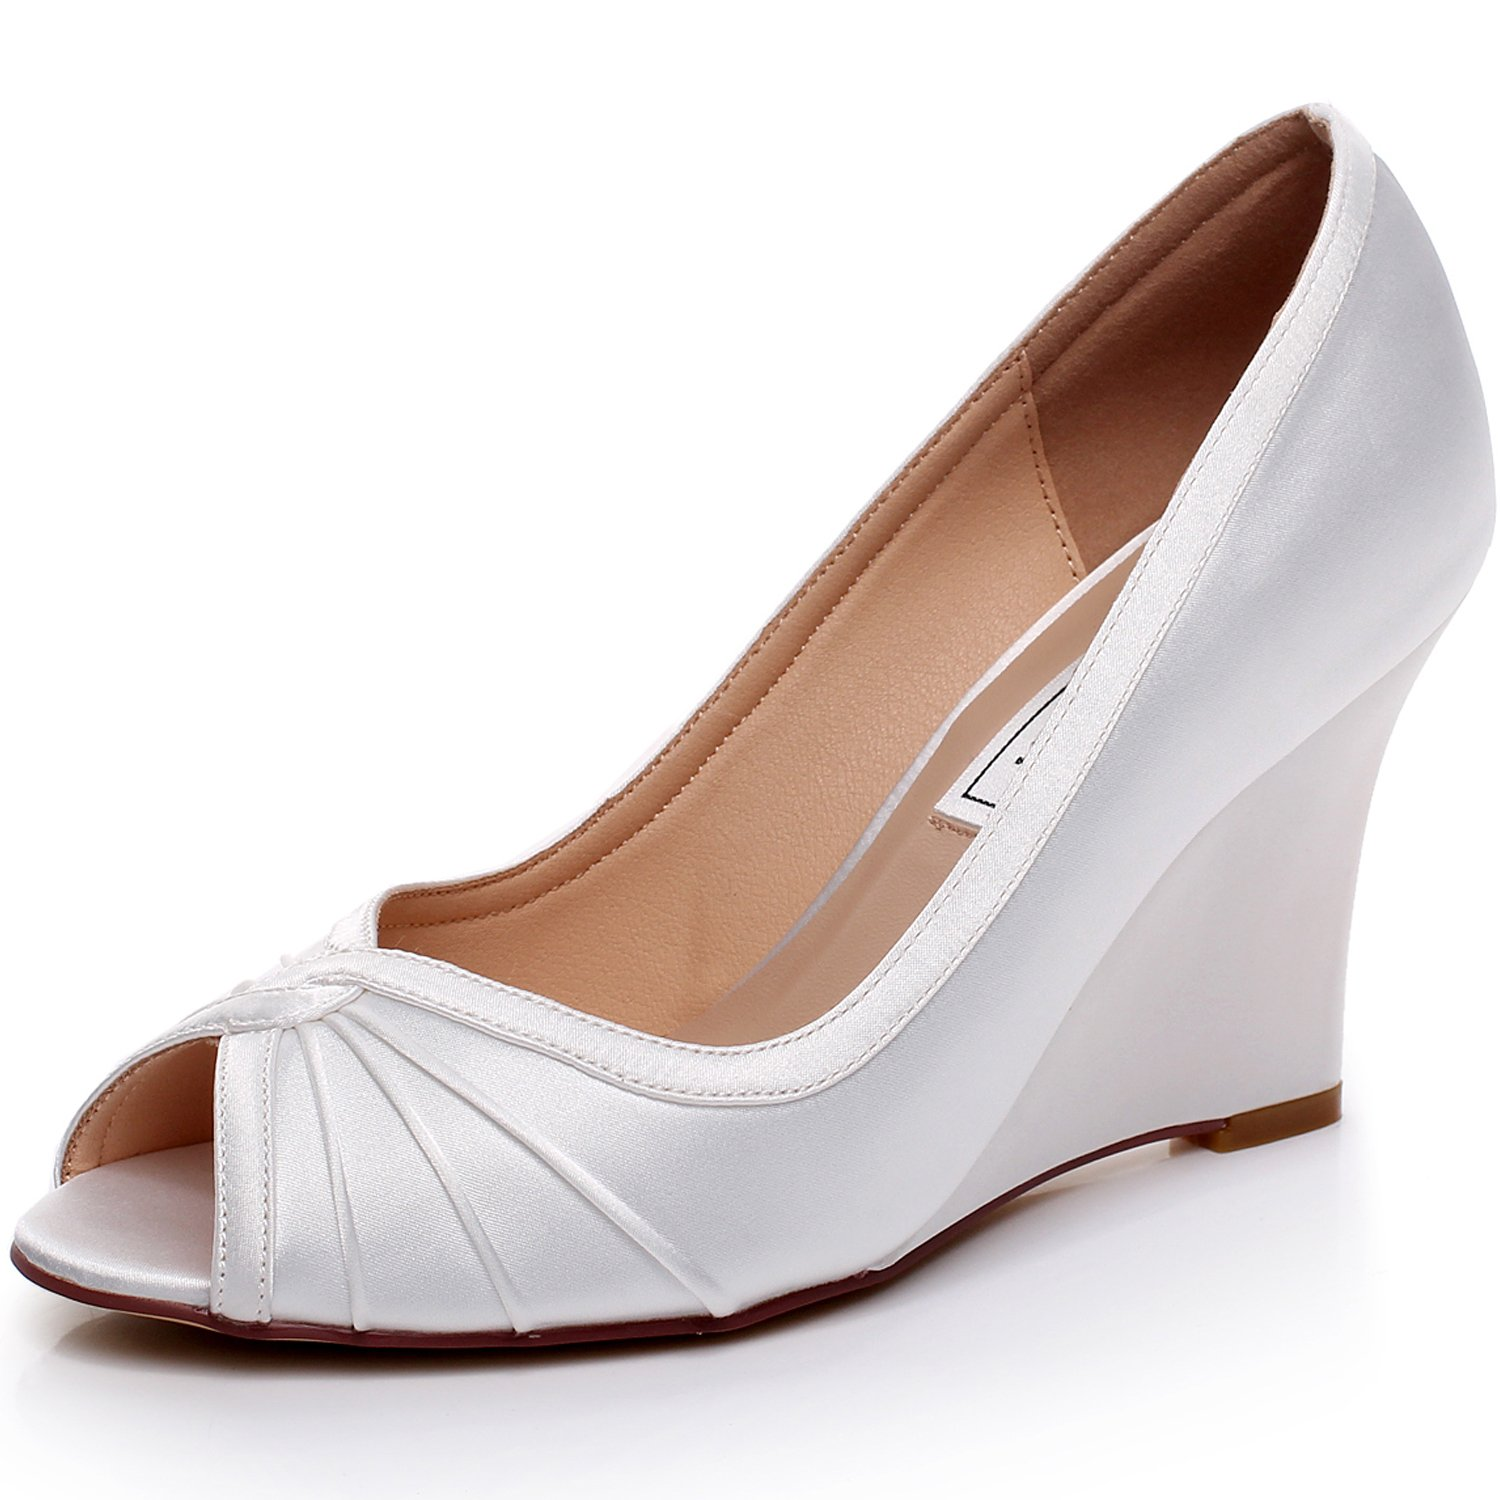 Stunning Comfortable Silver Wedding Shoes Pictures - Styles & Ideas ...